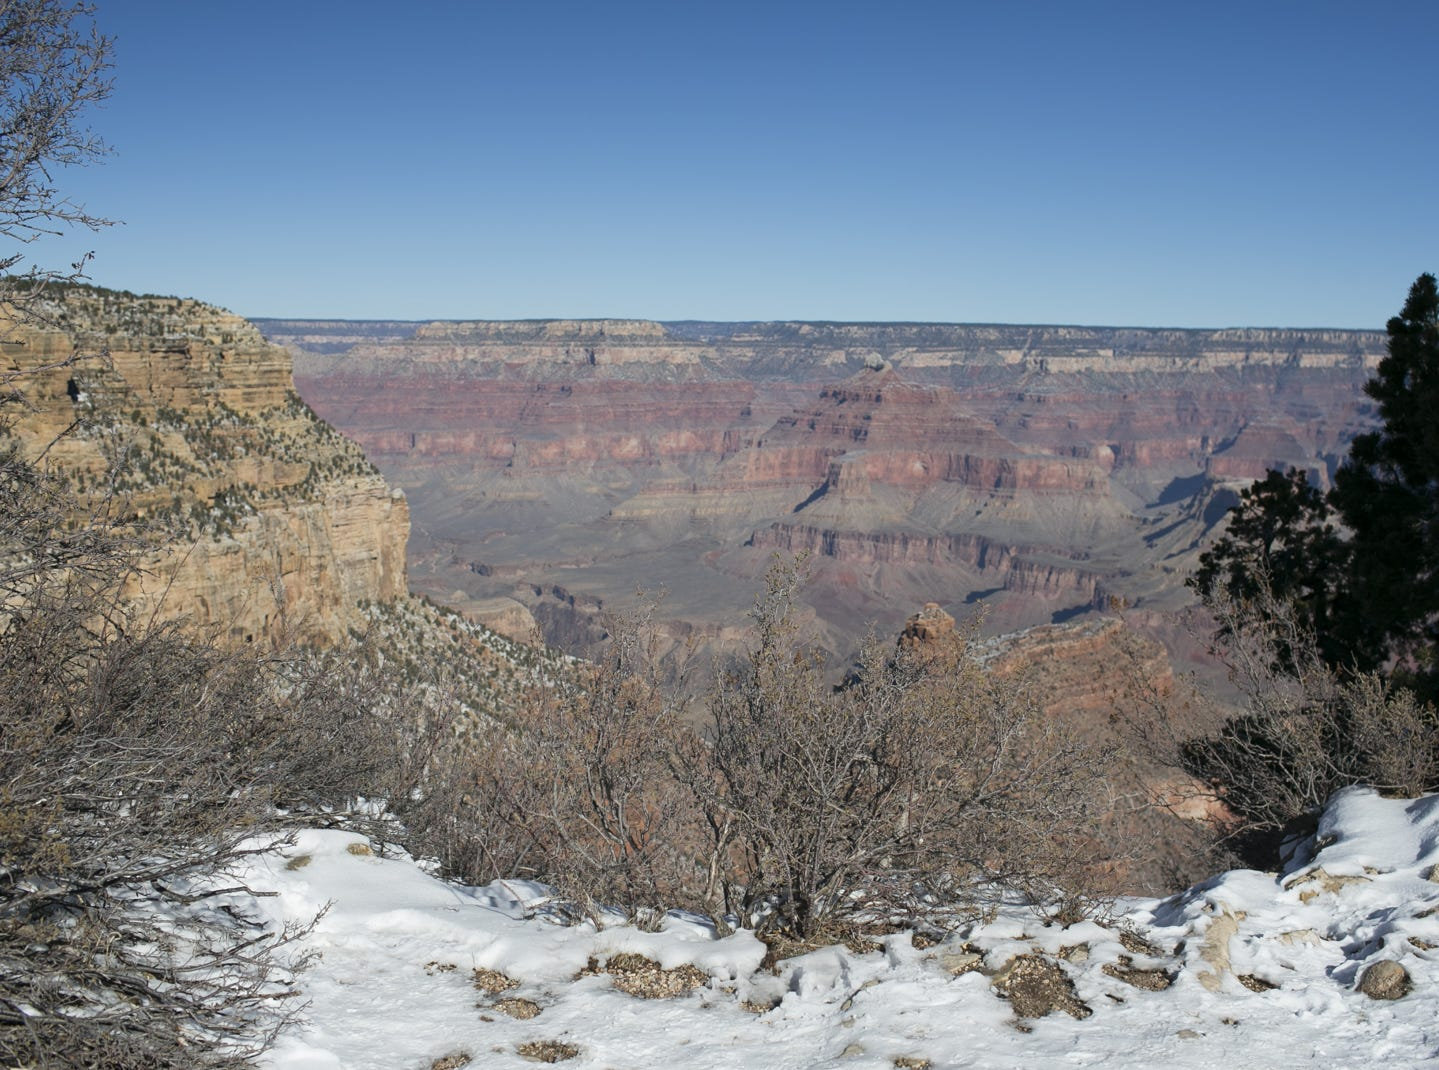 Snow rests near a path at Grand Canyon National Park on Jan. 4, 2019. The park was staffed at minimum capacity due to the government shutdown but retained much of its services due to an executive order issued by Arizona Gov. Doug Ducey to run the park with state funds in the event of a shutdown.